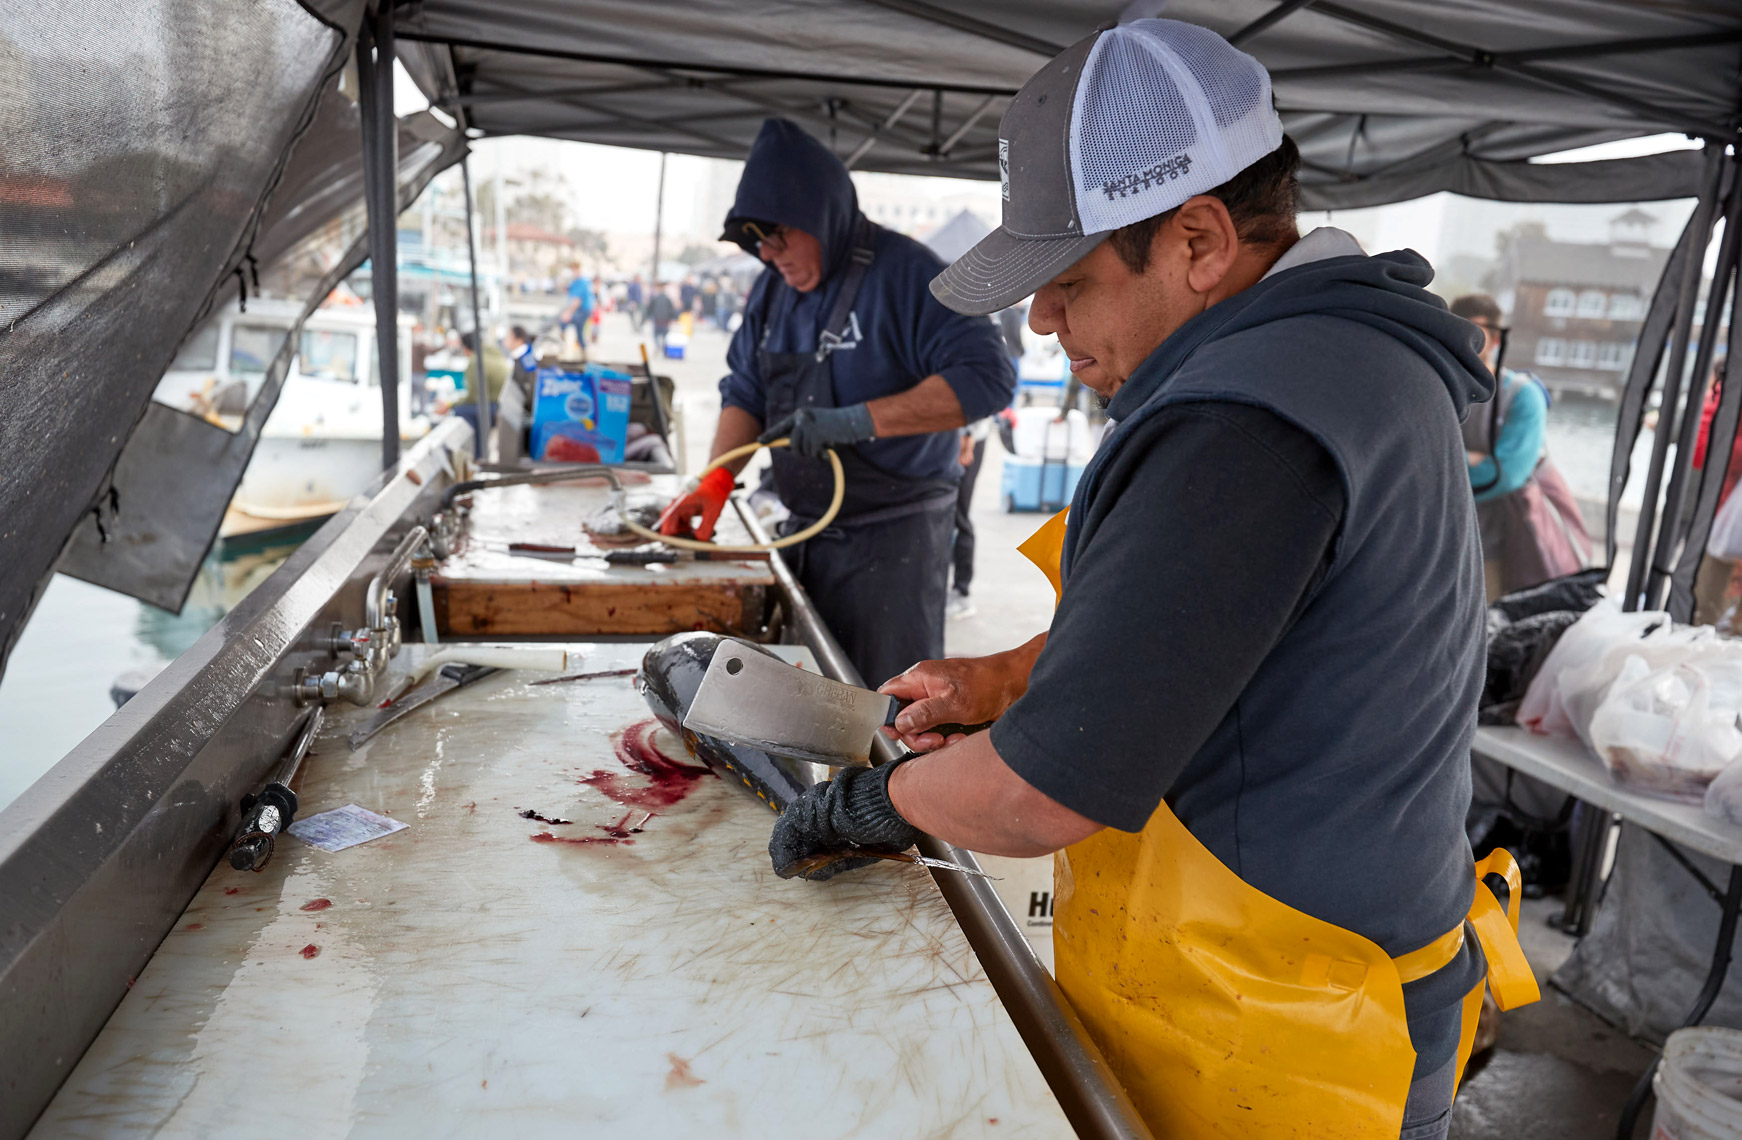 Worker Cuts Fish for Customers